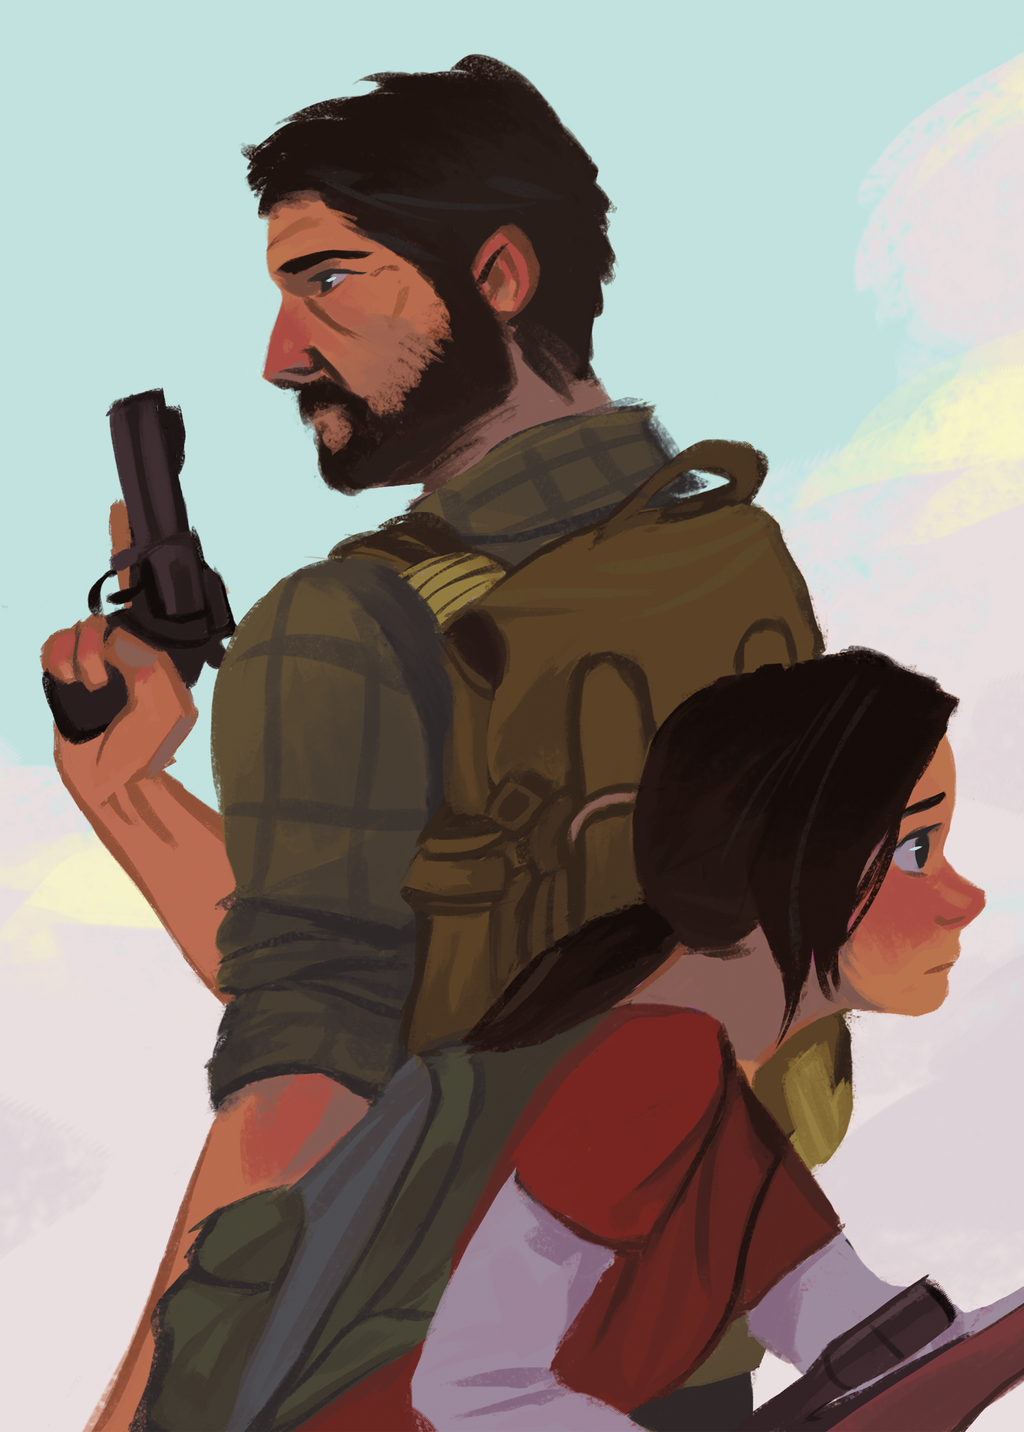 Ellie and Joel by russell-o on DeviantArt